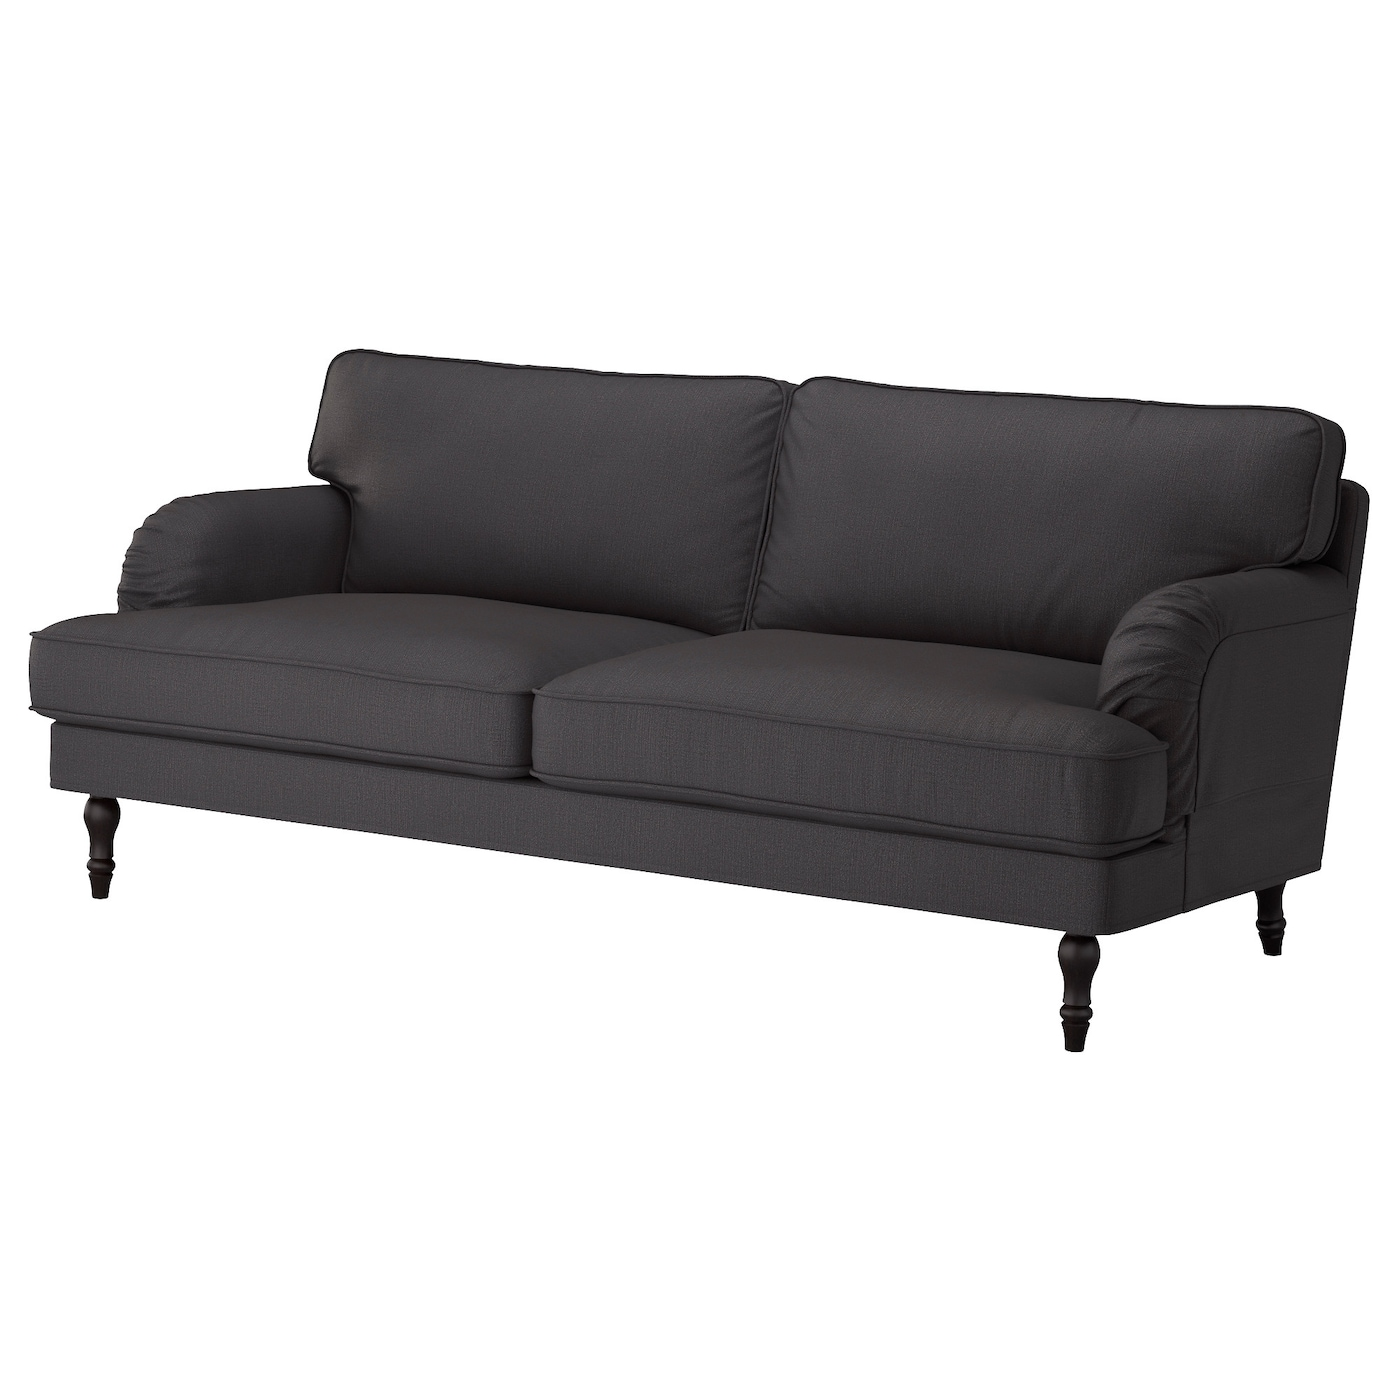 stocksund legs f armch chaise longue sofas black ikea. Black Bedroom Furniture Sets. Home Design Ideas